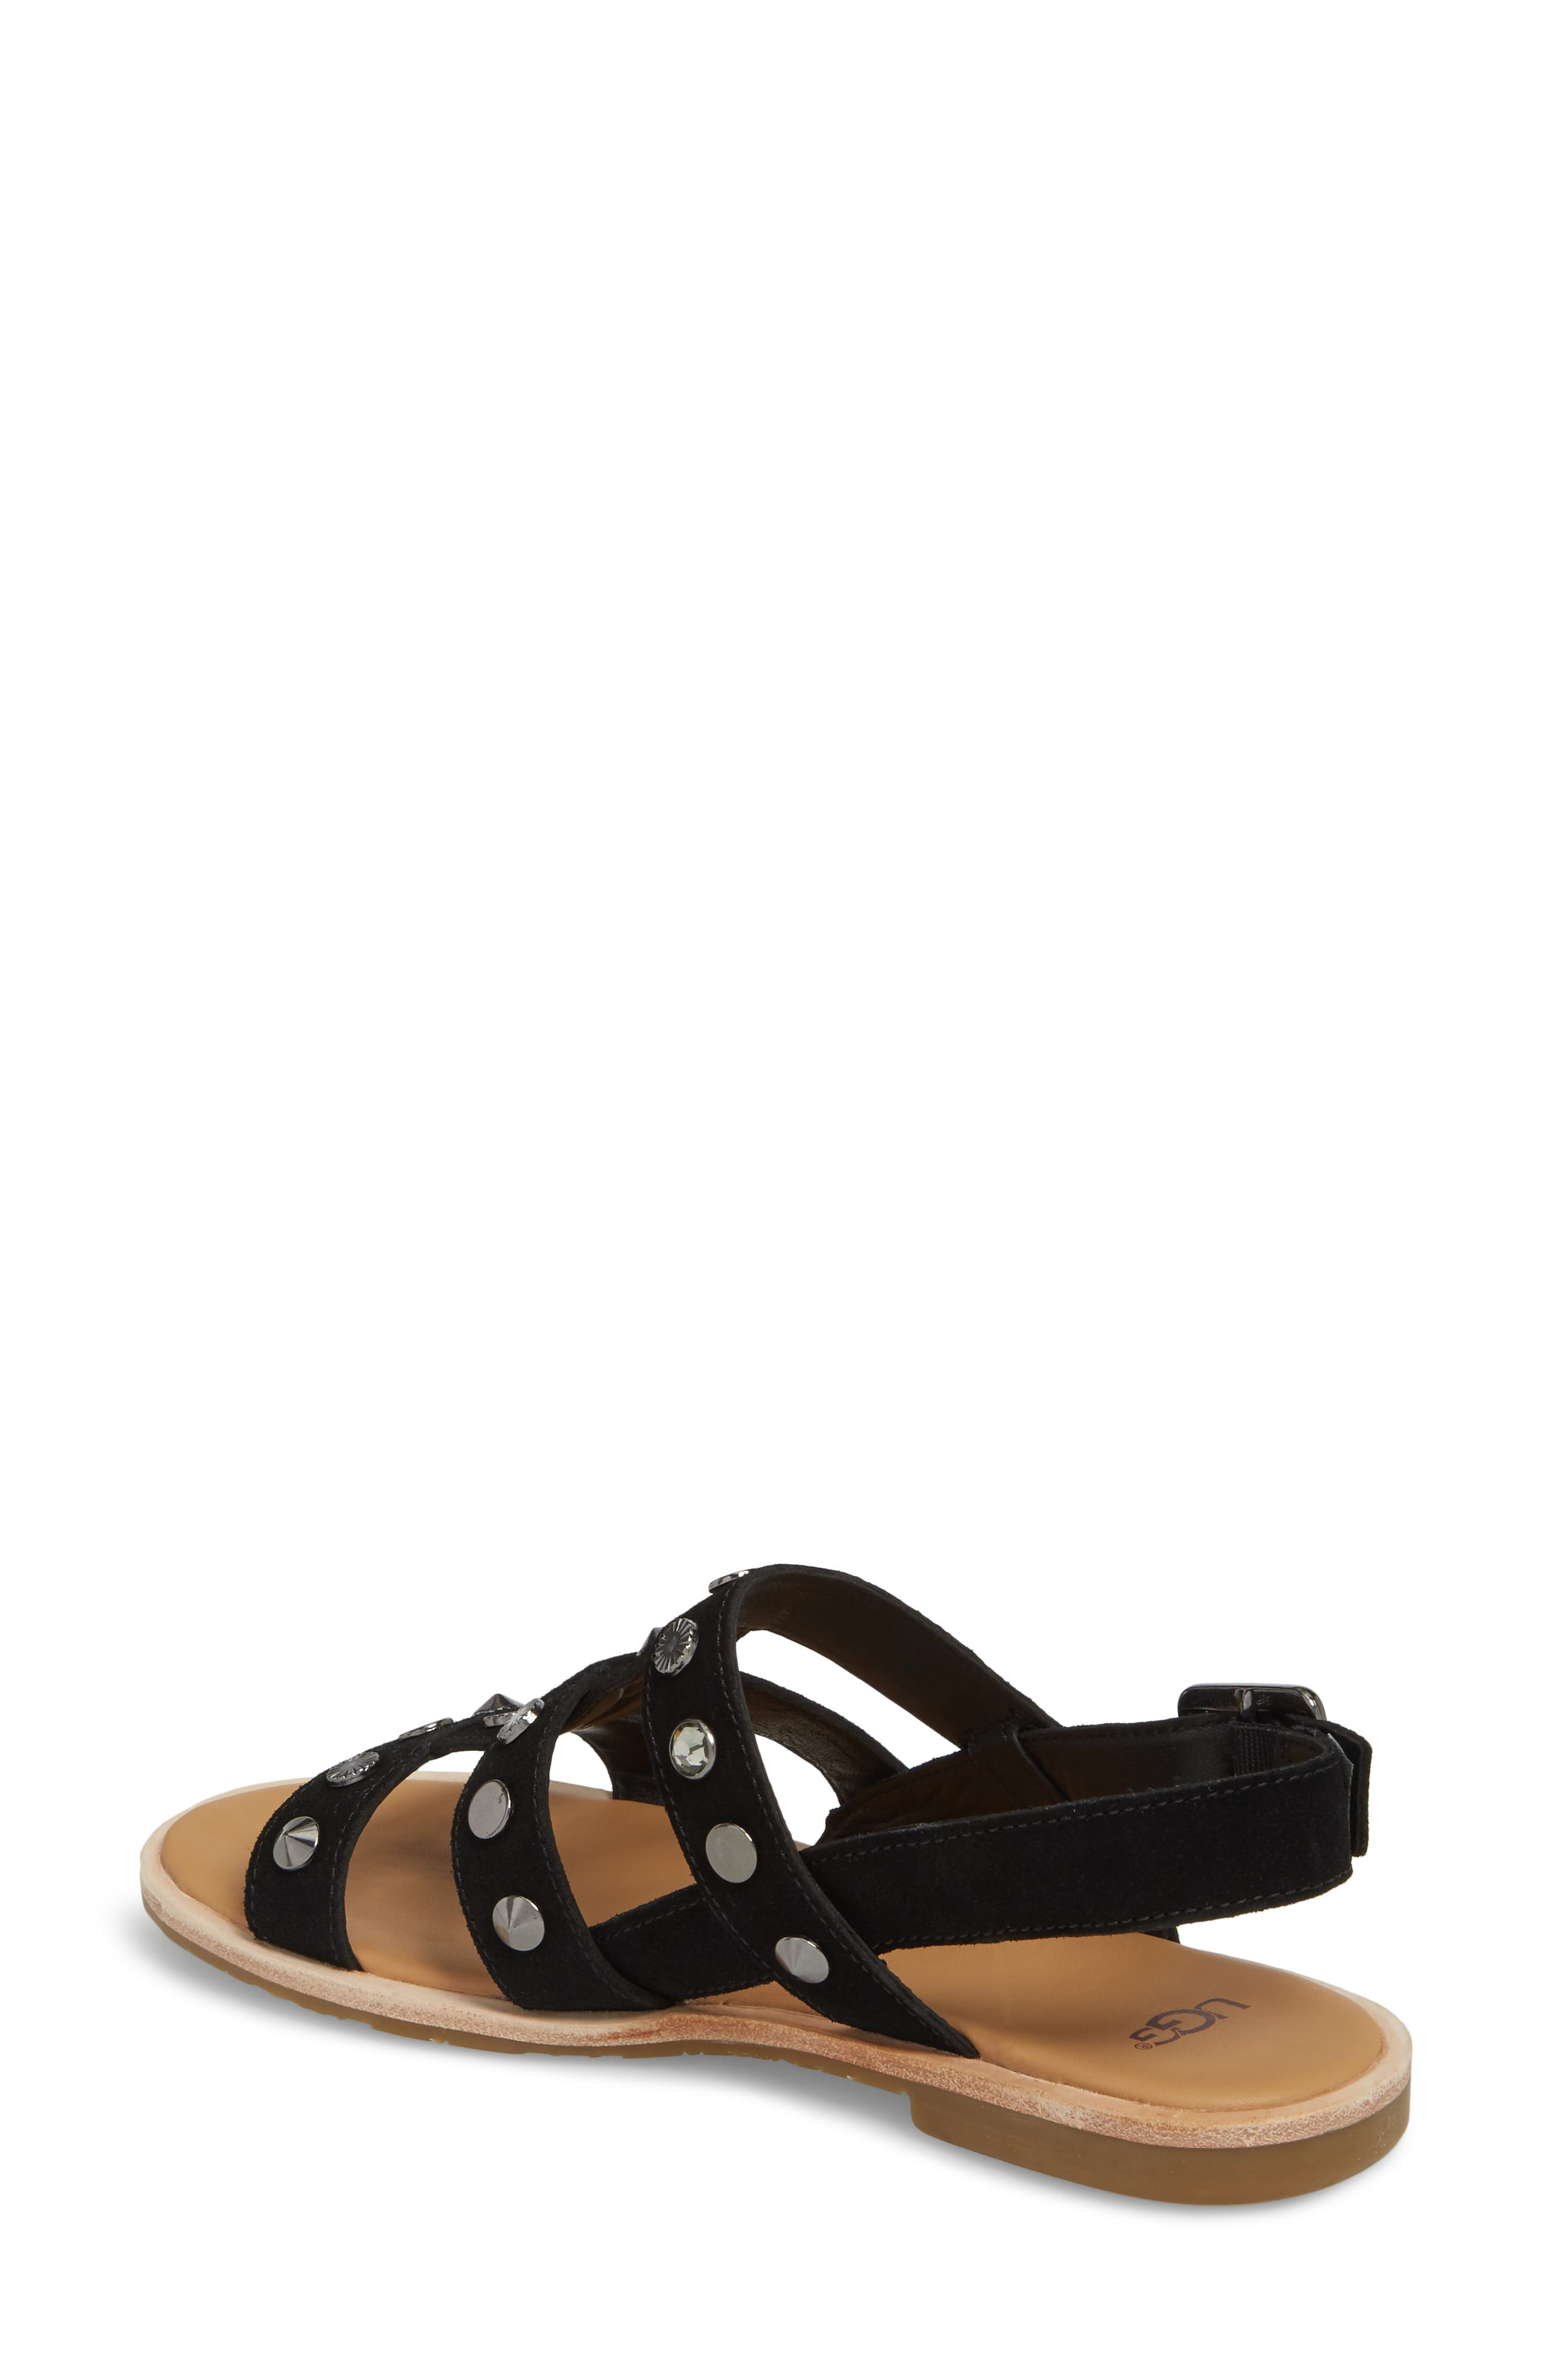 Zariah Studded Sandal,                             Alternate thumbnail 2, color,                             001